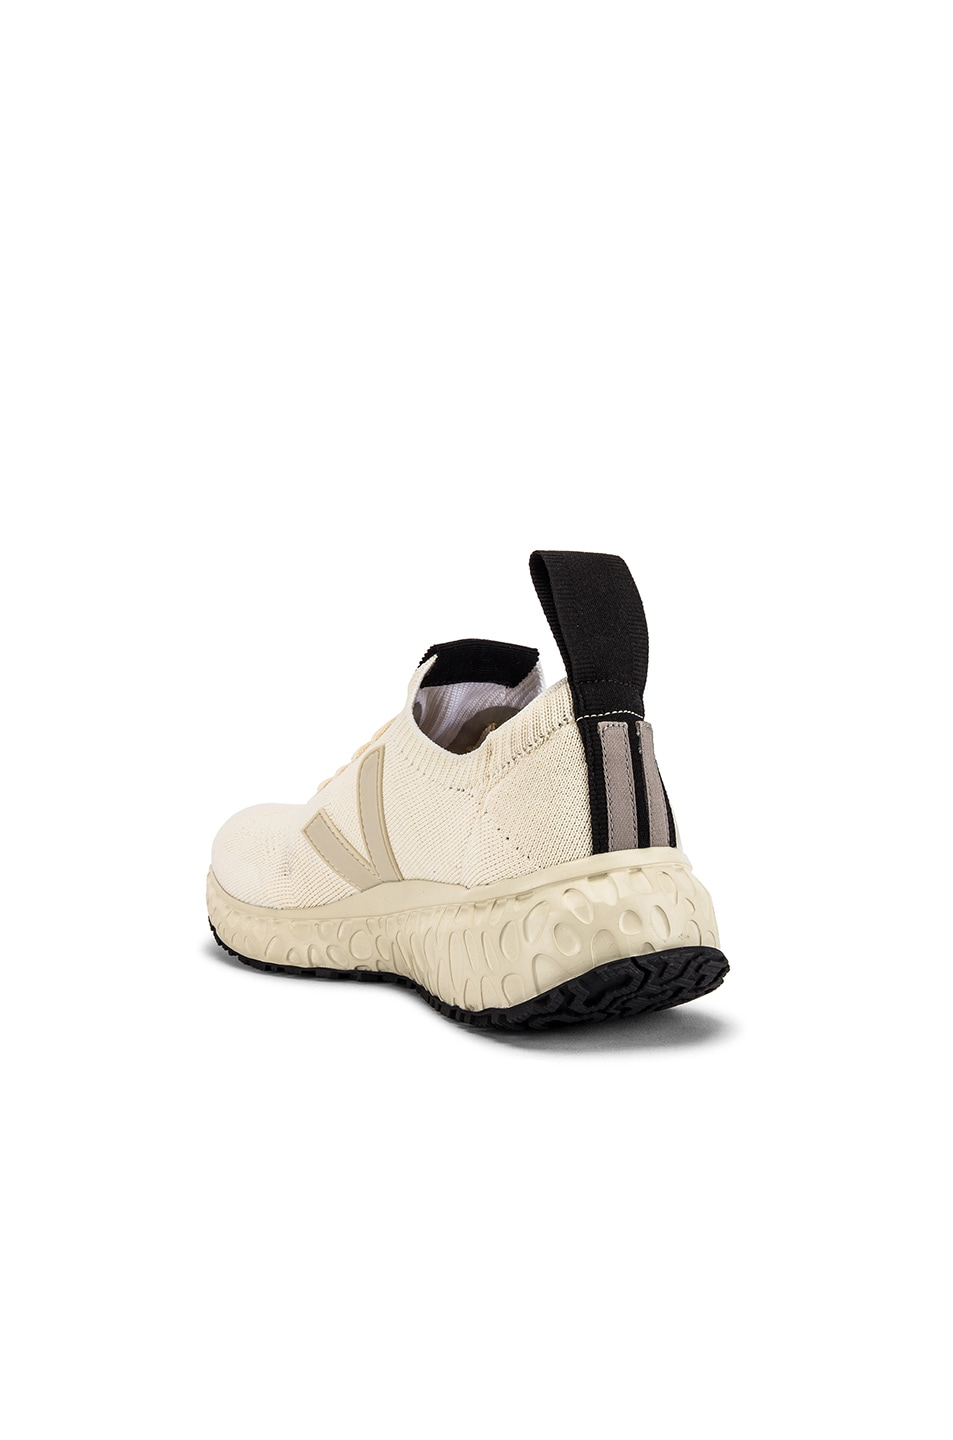 Image 3 of Rick Owens x Veja Sneakers in White in Wite